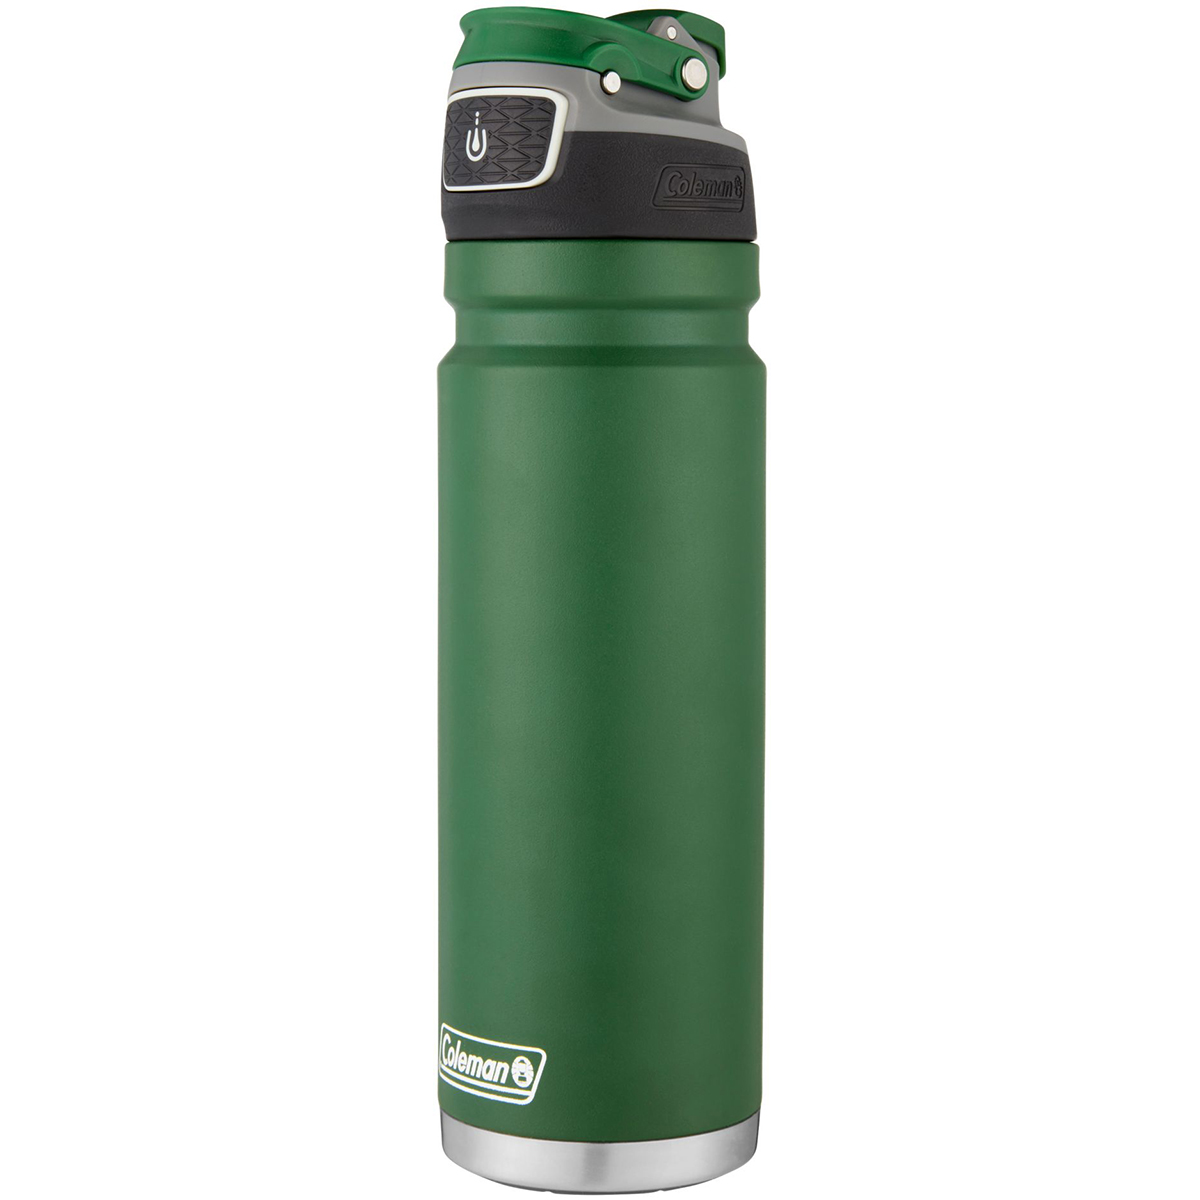 Coleman-24-oz-Free-Flow-Autoseal-Insulated-Stainless-Steel-Water-Bottle thumbnail 7